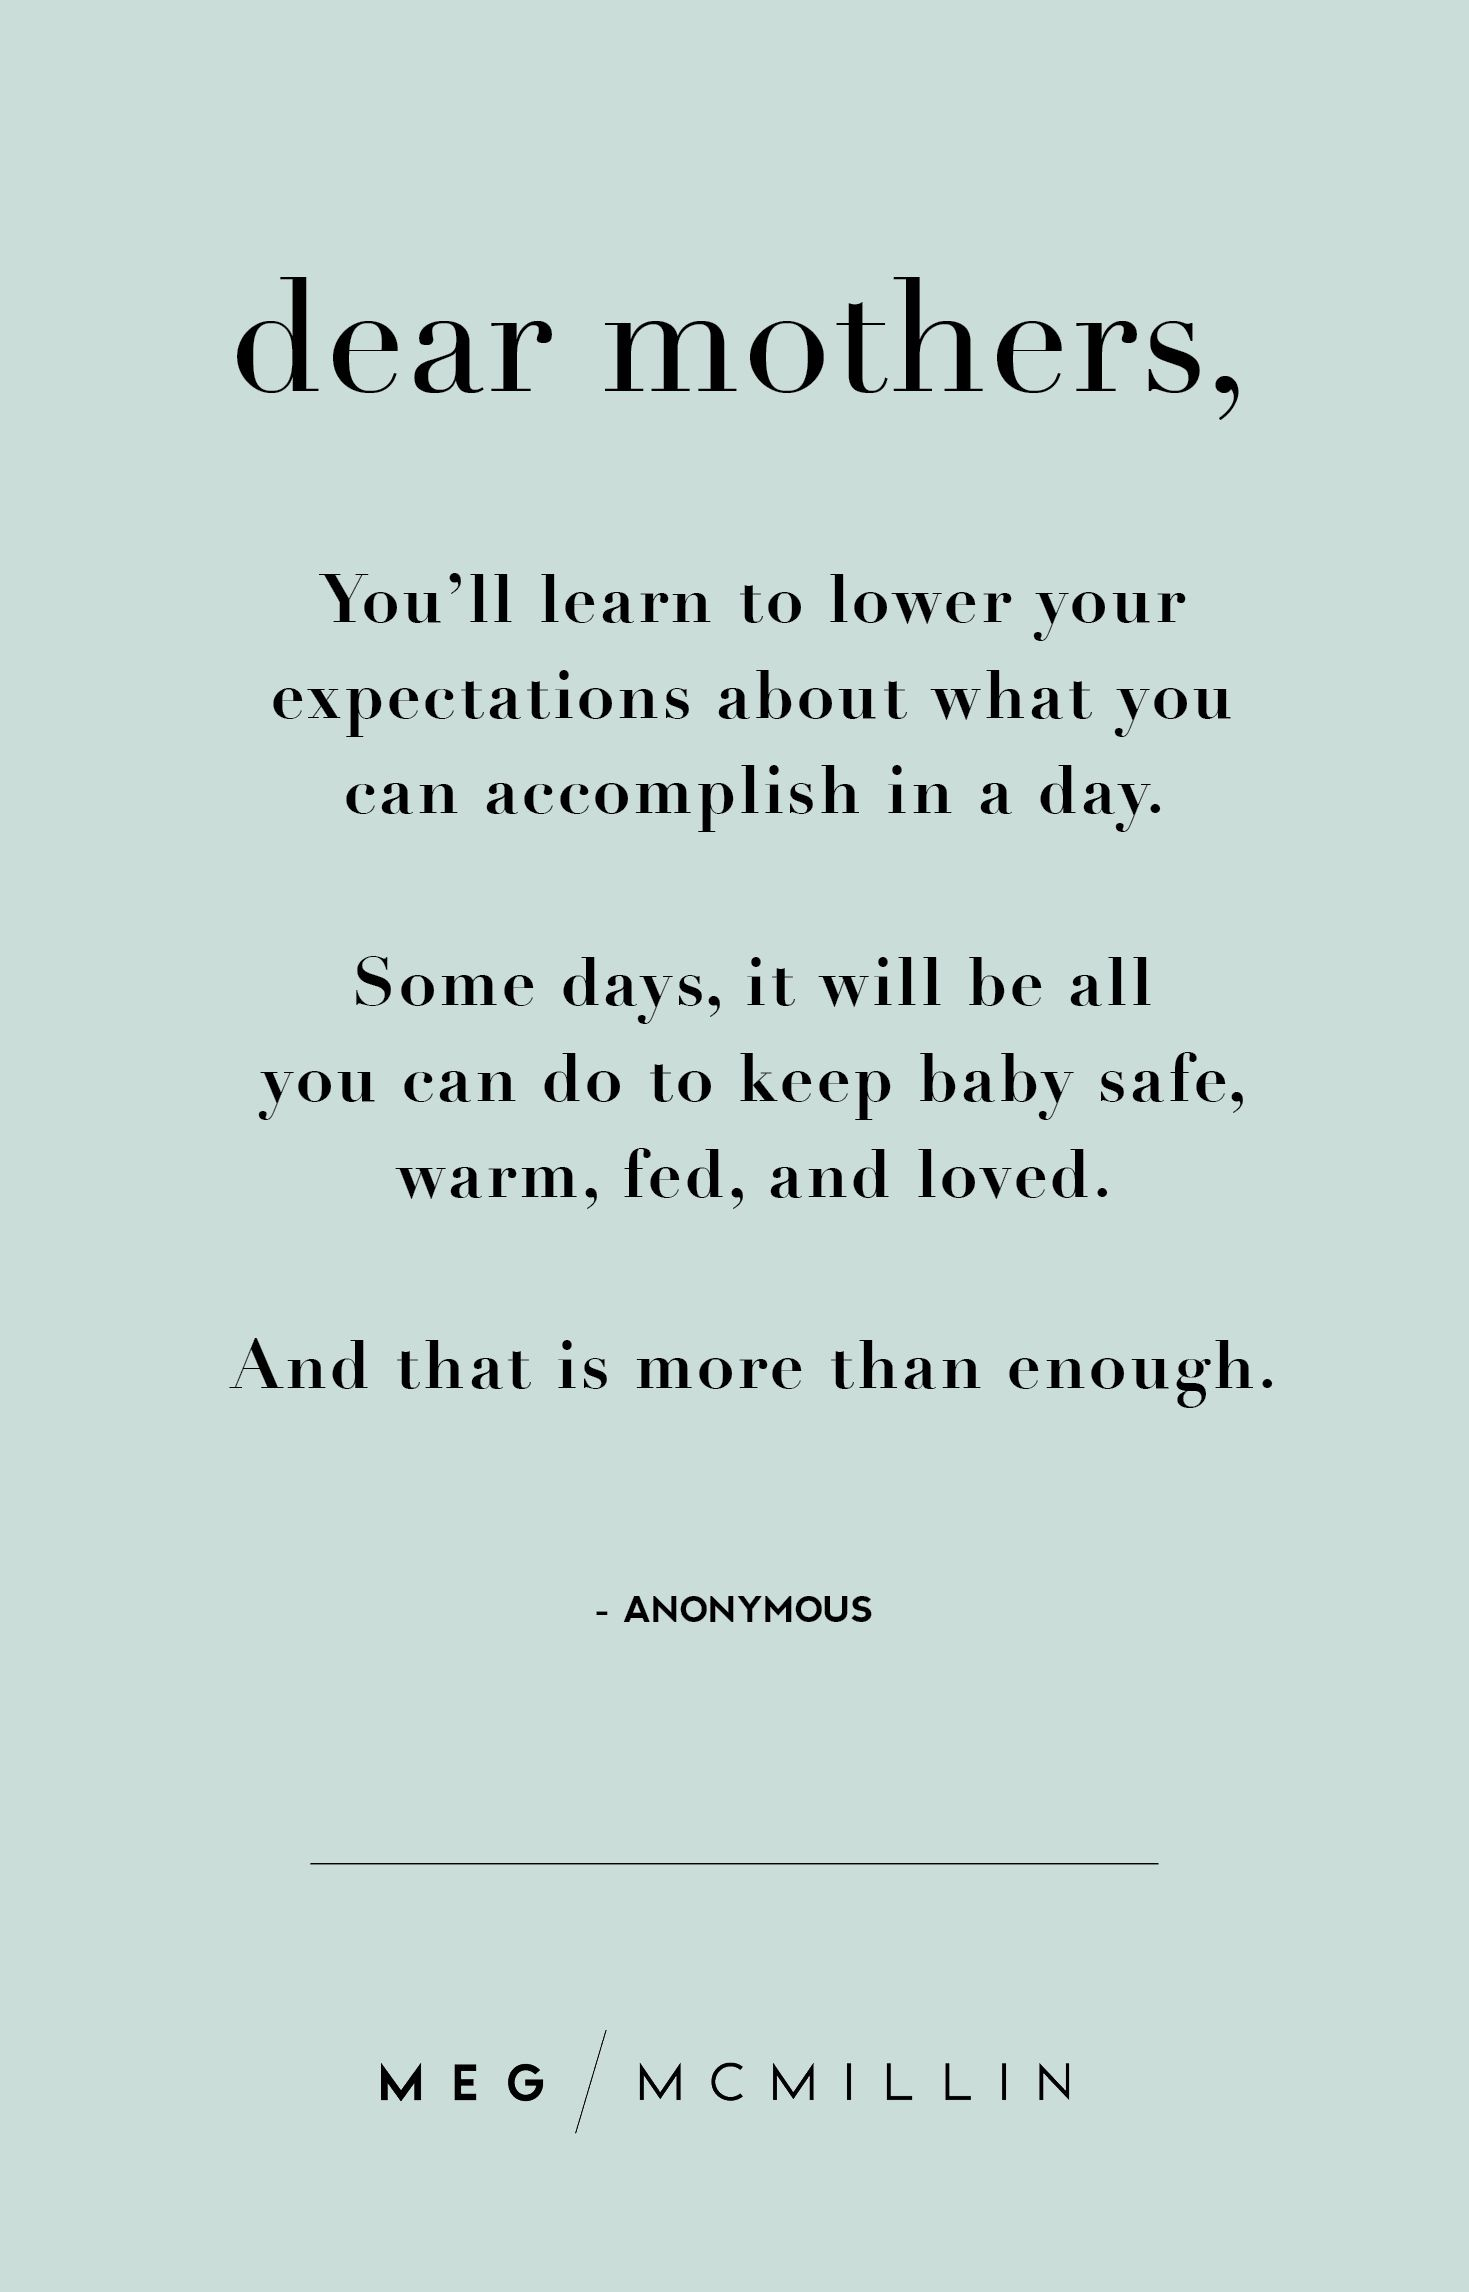 Motherhood Quotes Custom 10 Inspiring Mom Quotes To Get You Through A Tough Day  Meg